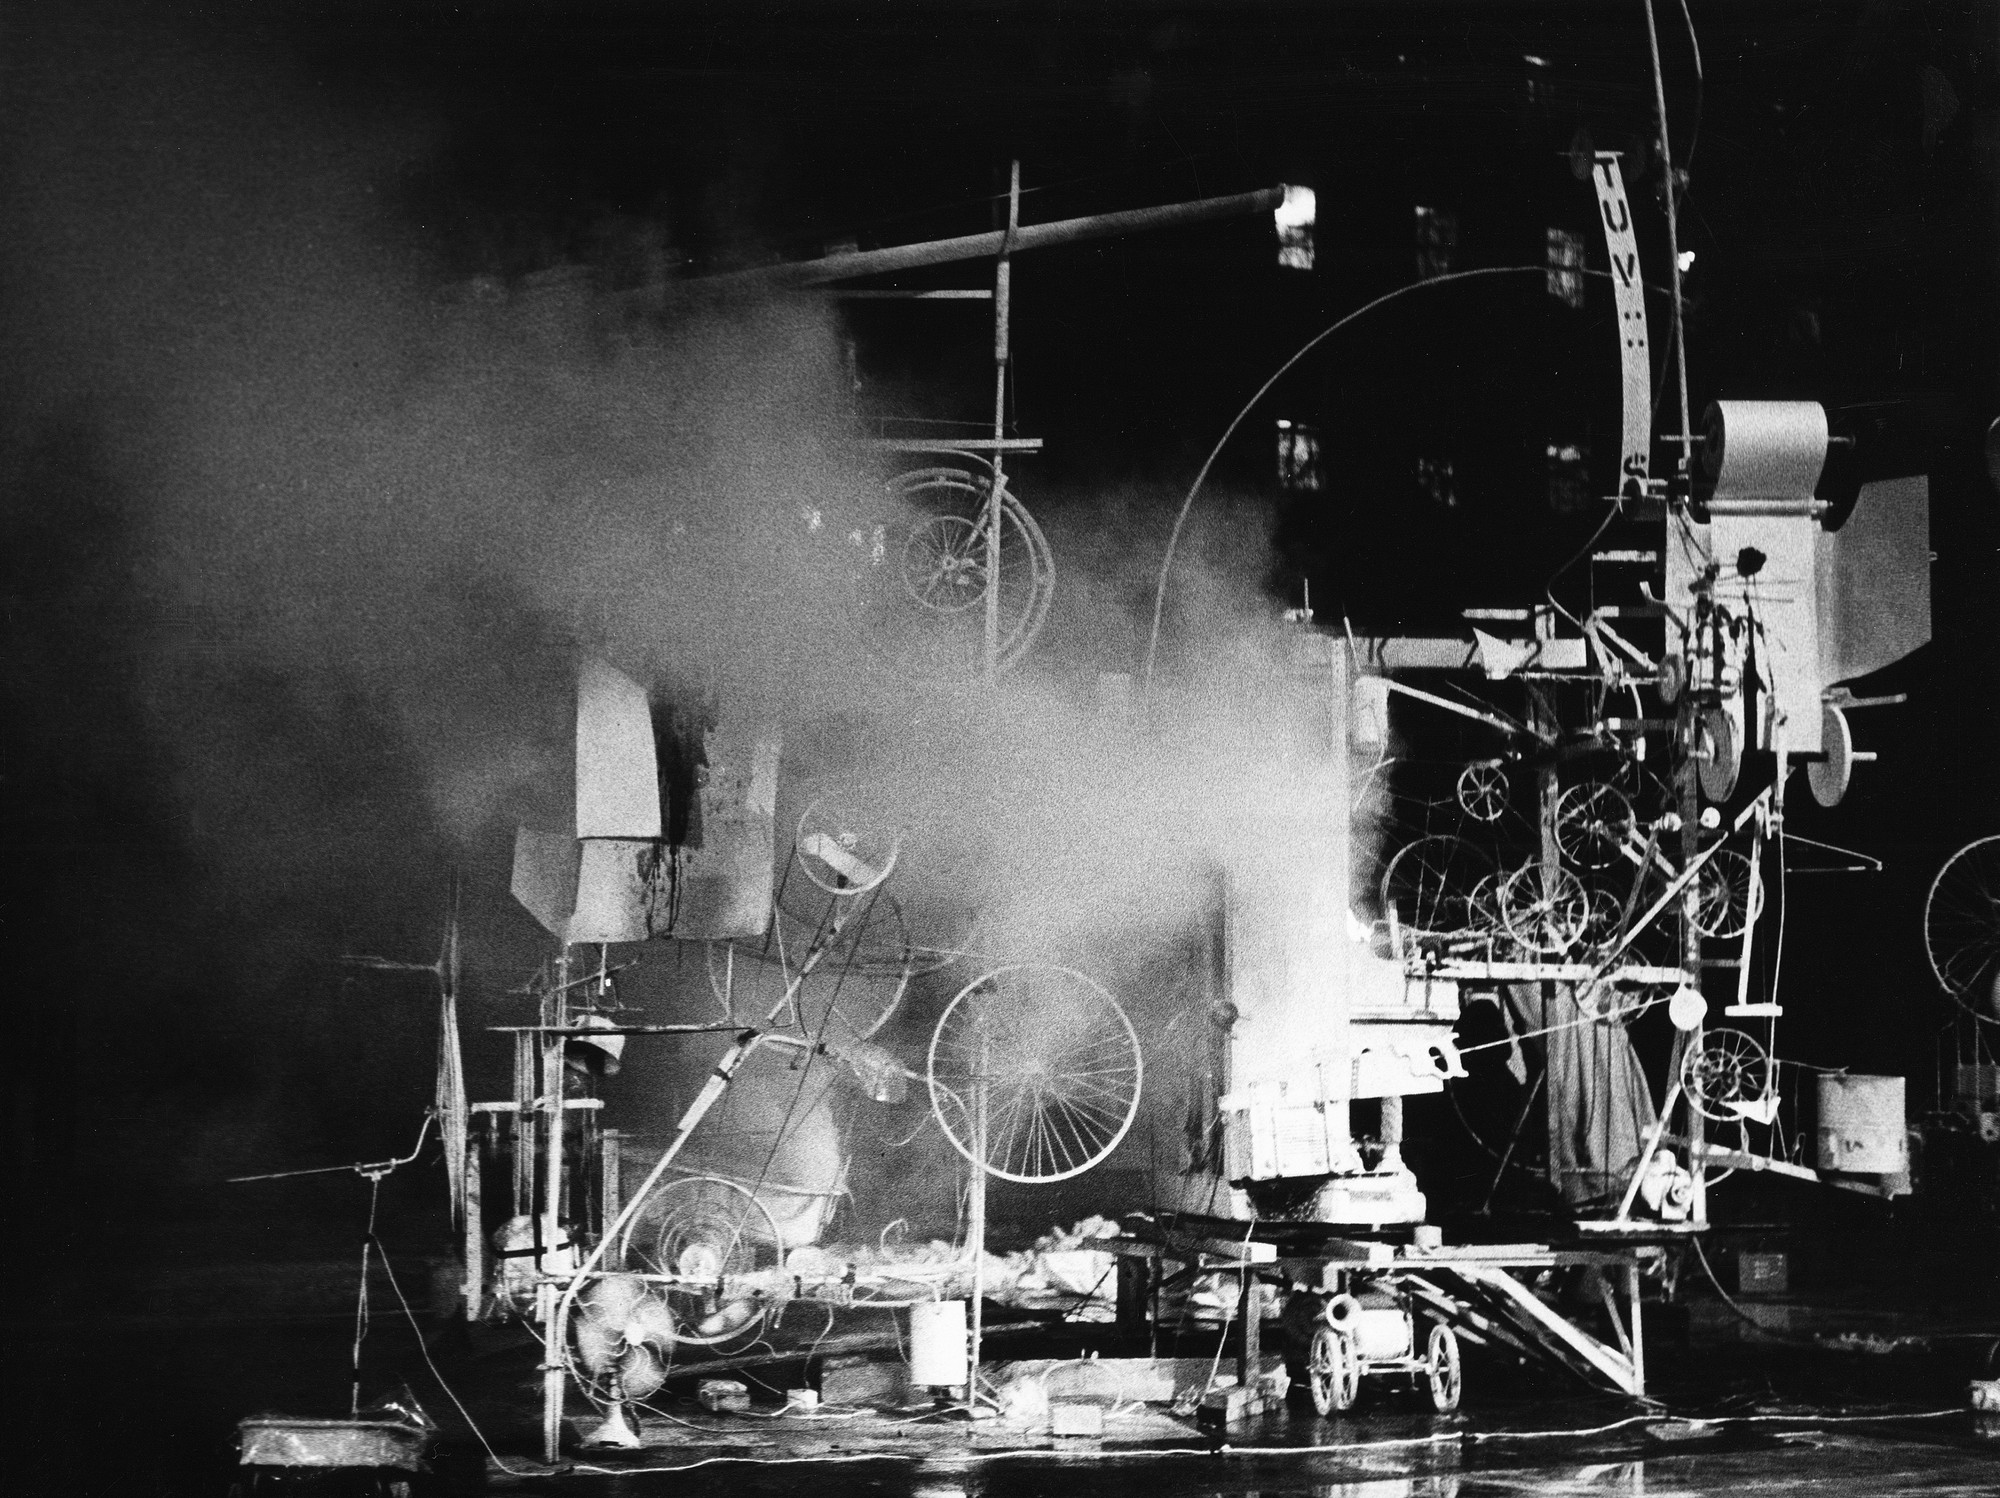 *Homage to Jean Tinguely's Homage to New York*